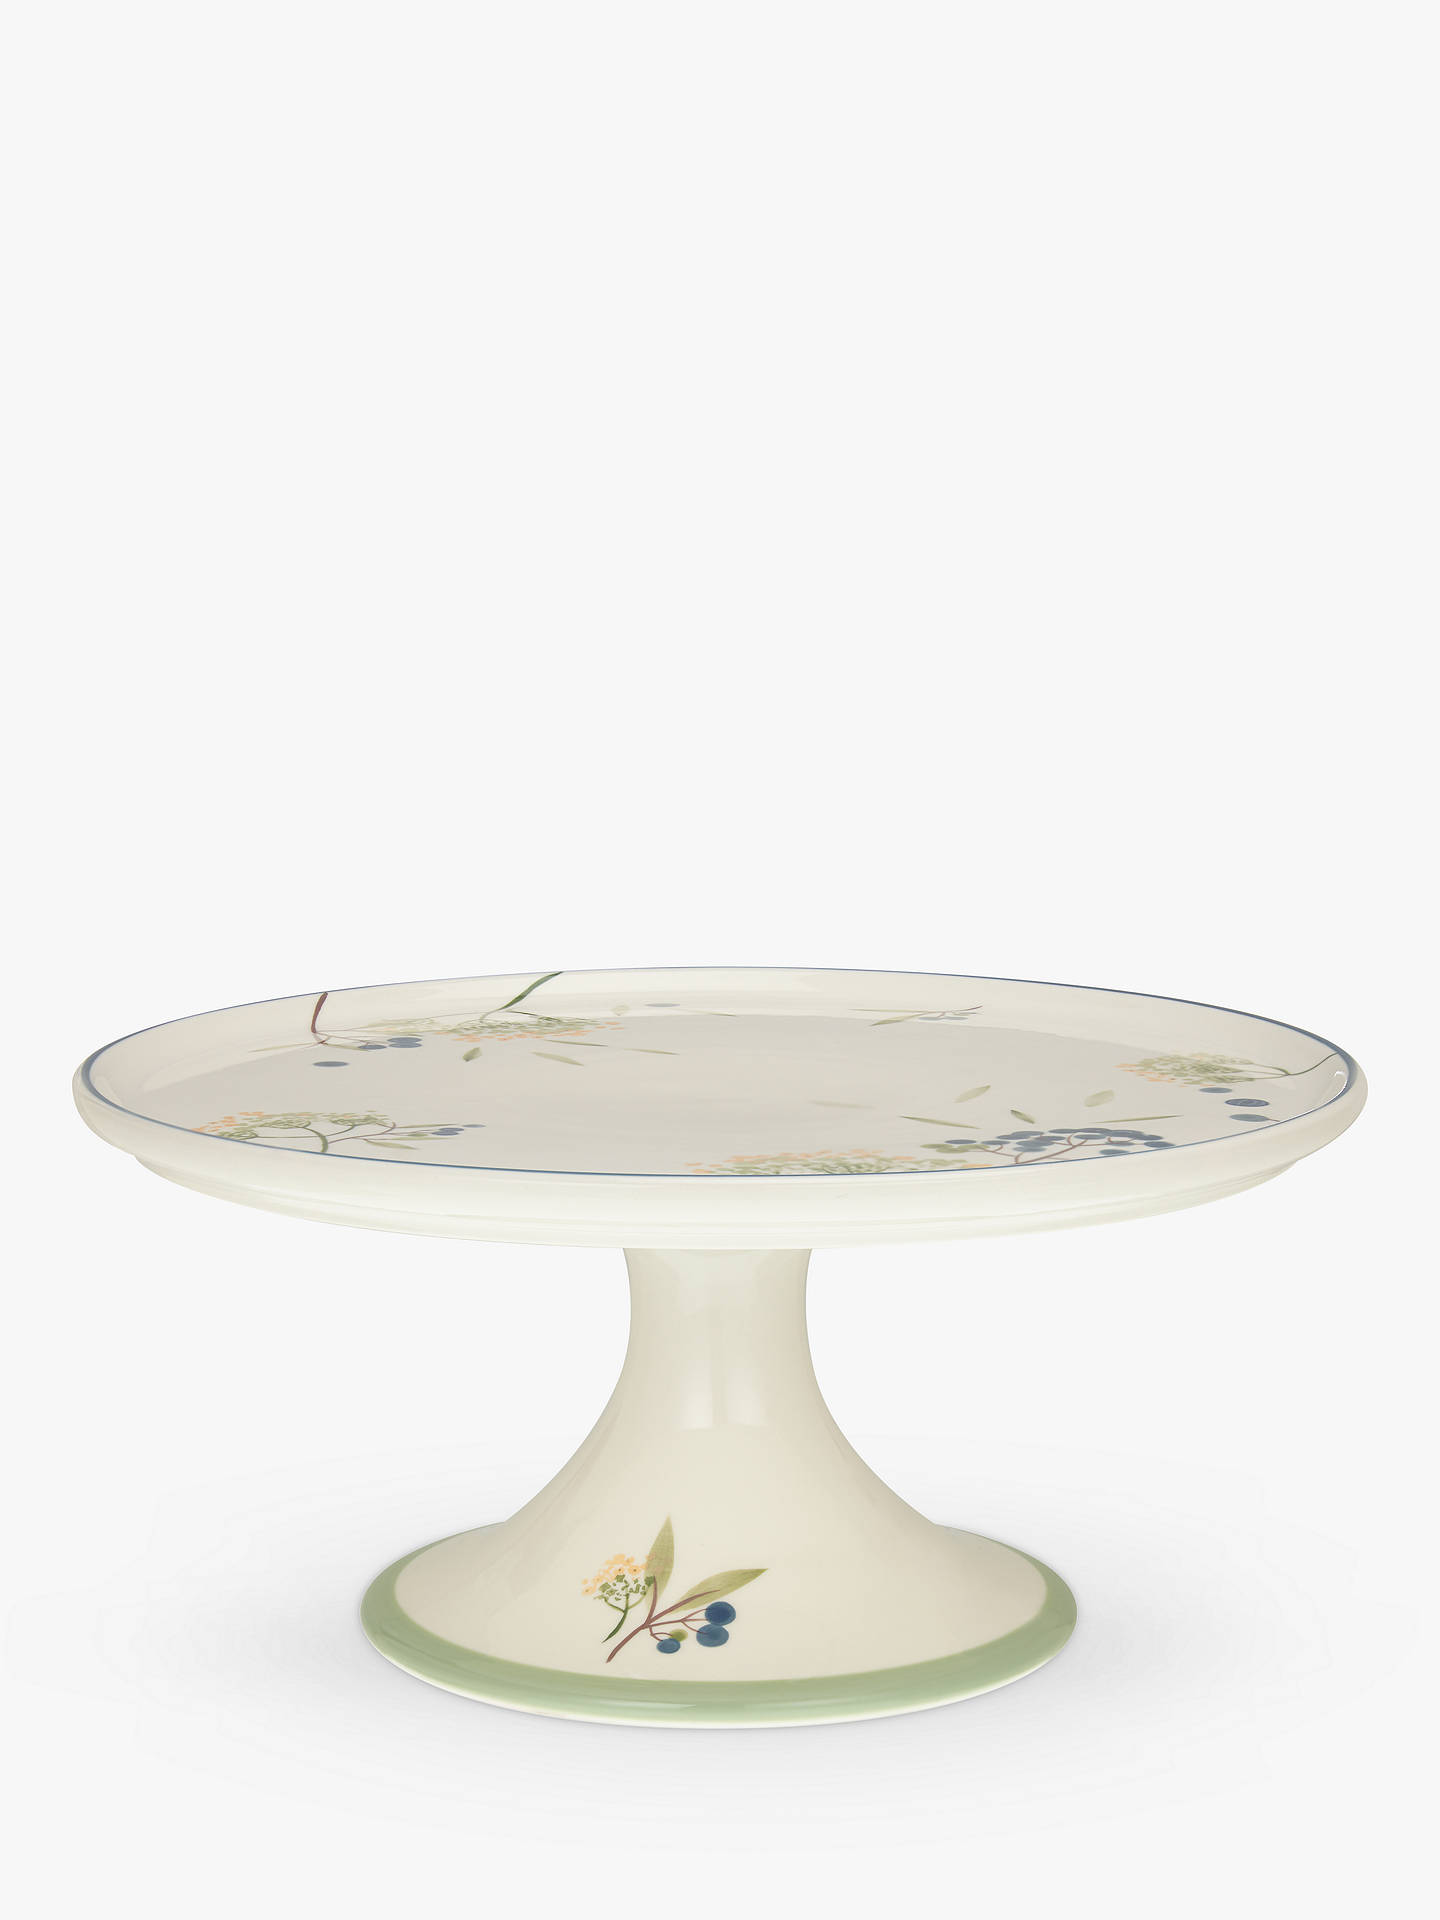 BuyJohn Lewis & Partners Hazlemere Flower Footed Cake Stand Online at johnlewis.com